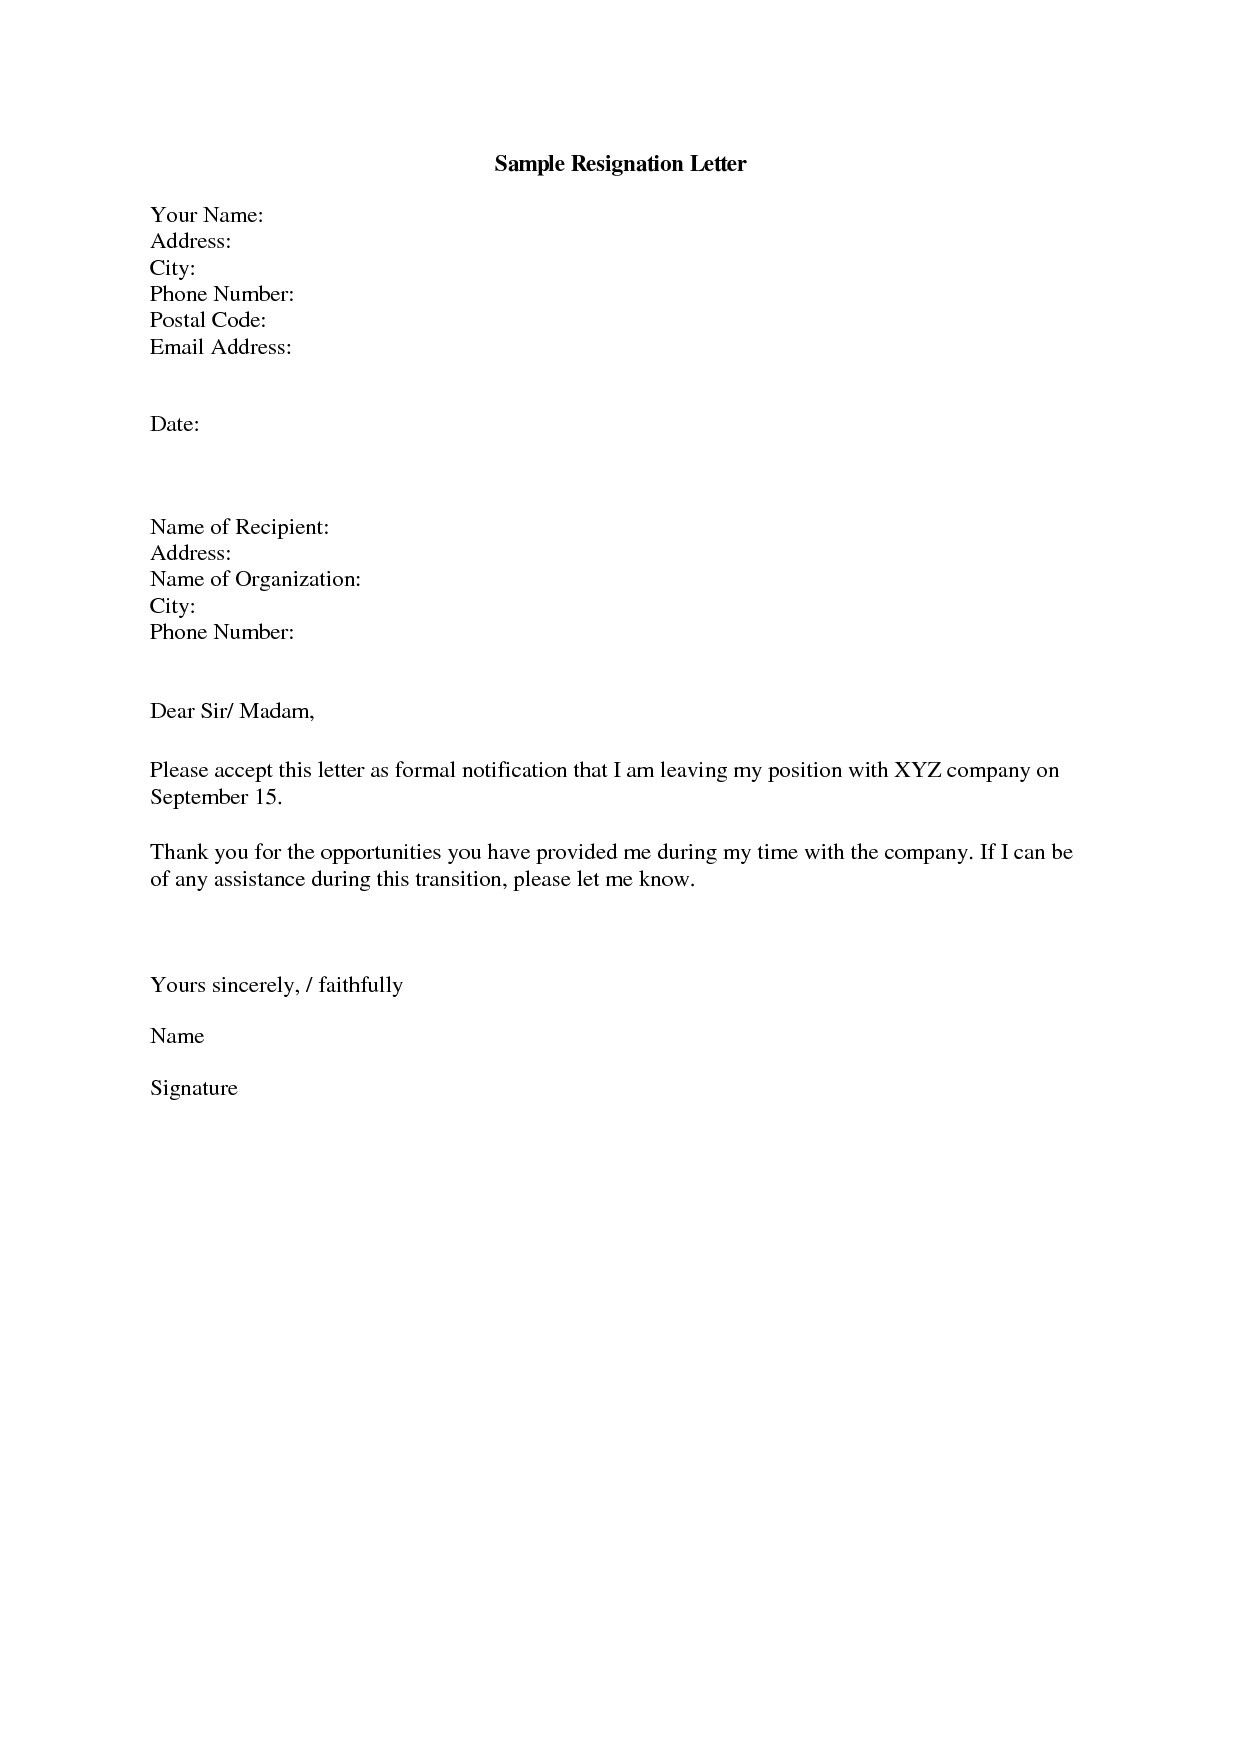 Letter of resignation simple use after amending it as suitable letter of resignation simple use after amending it as suitable resigning from your work is a serious process so take it seriously thecheapjerseys Gallery